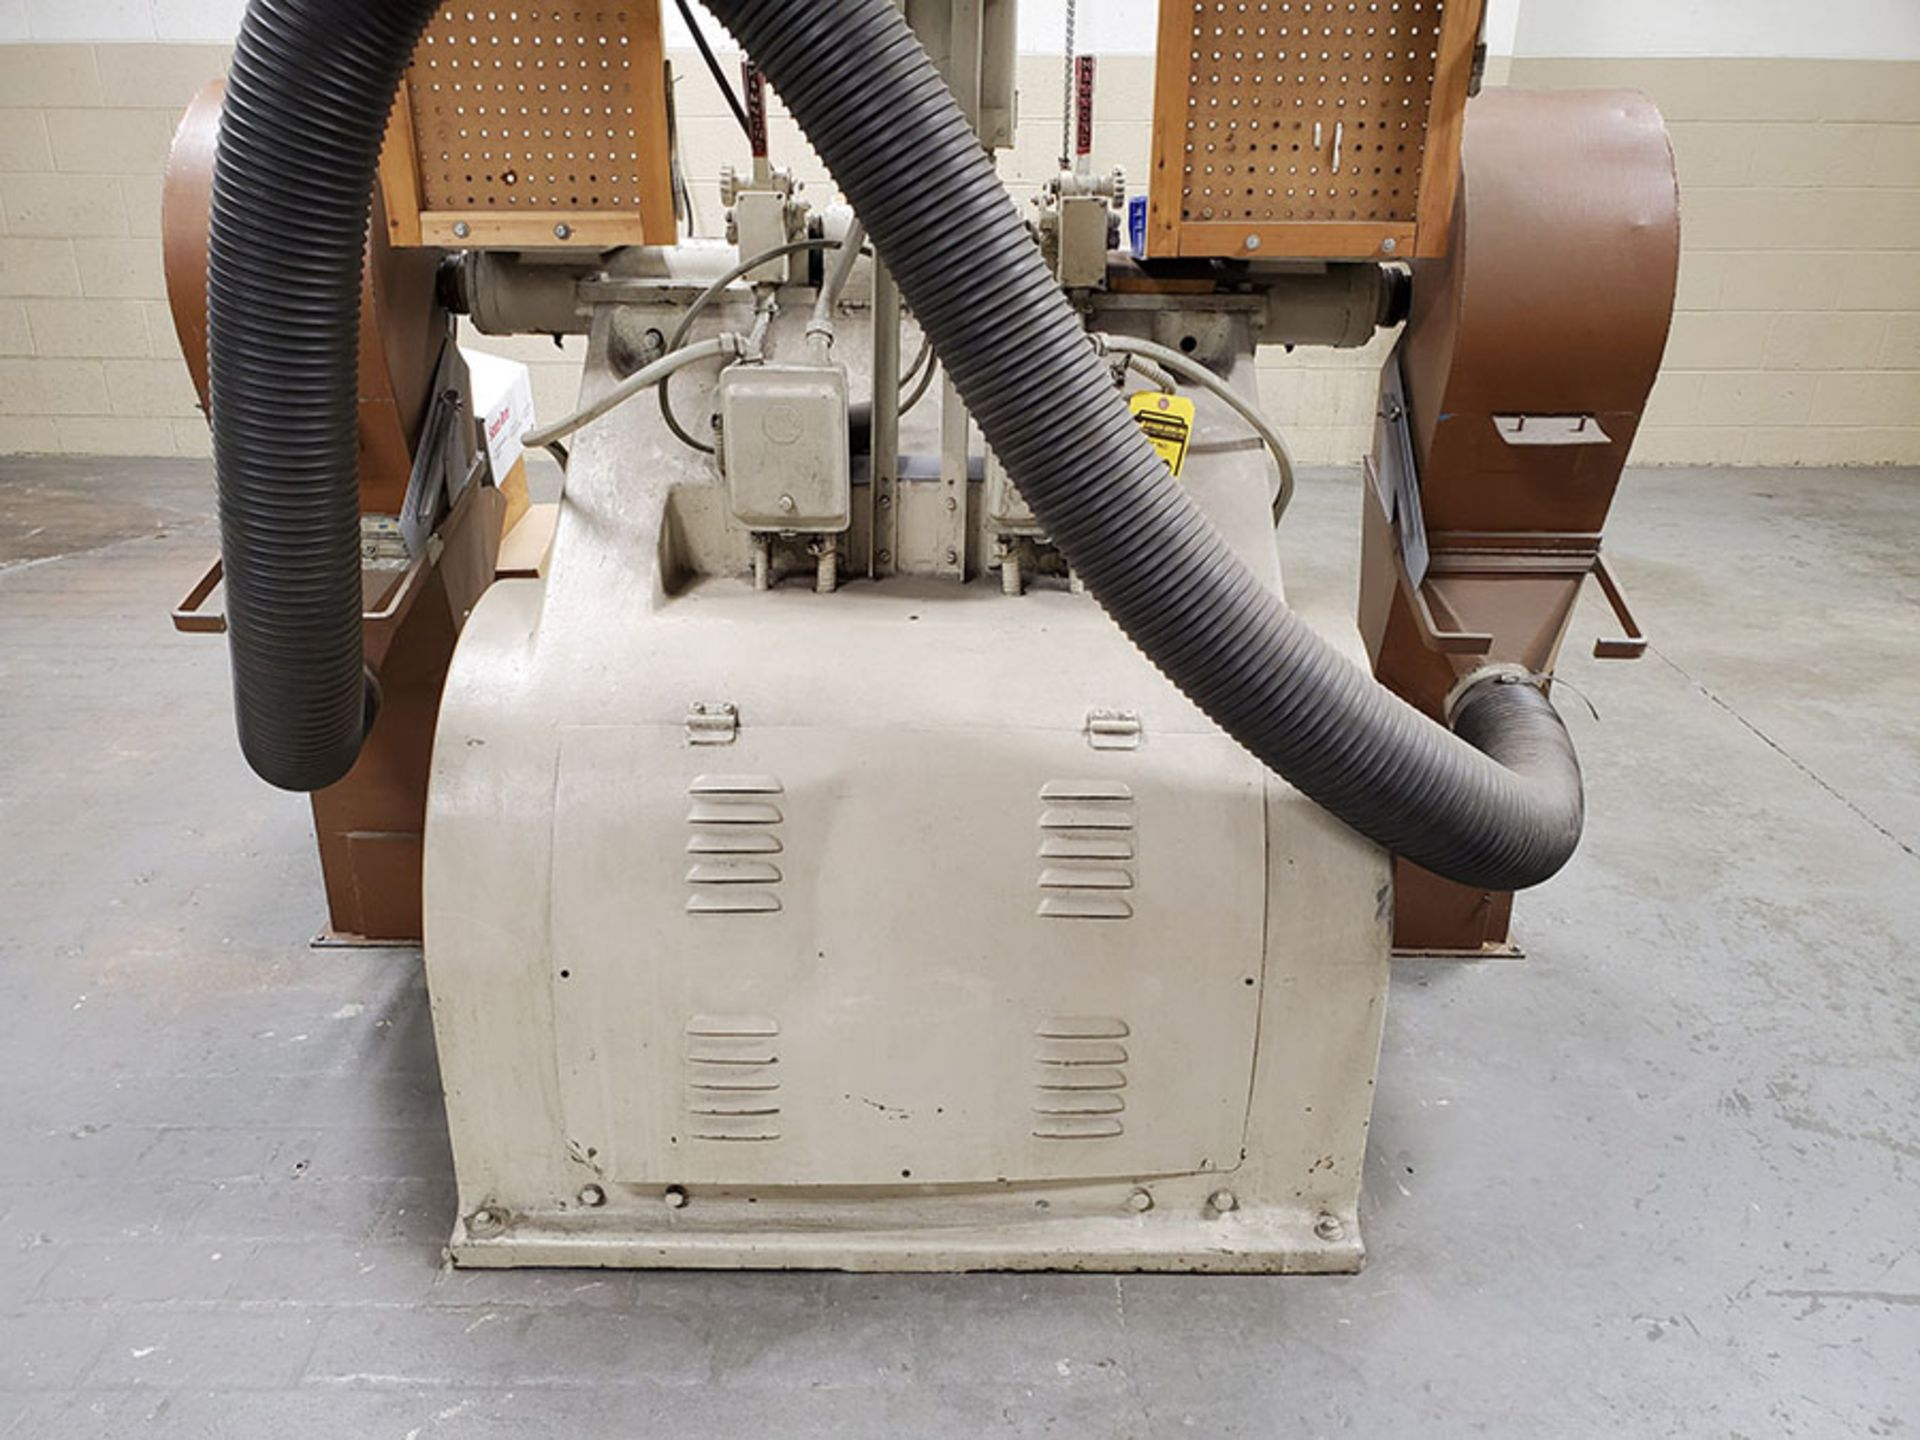 Lot 138 - HAMMOND MACHINERY DOUBLE END GRINDER; MODEL 5-RRO, S/N 9563, 5-HP, 1745 RPM MOTOR, 440V, 3-PHASE,